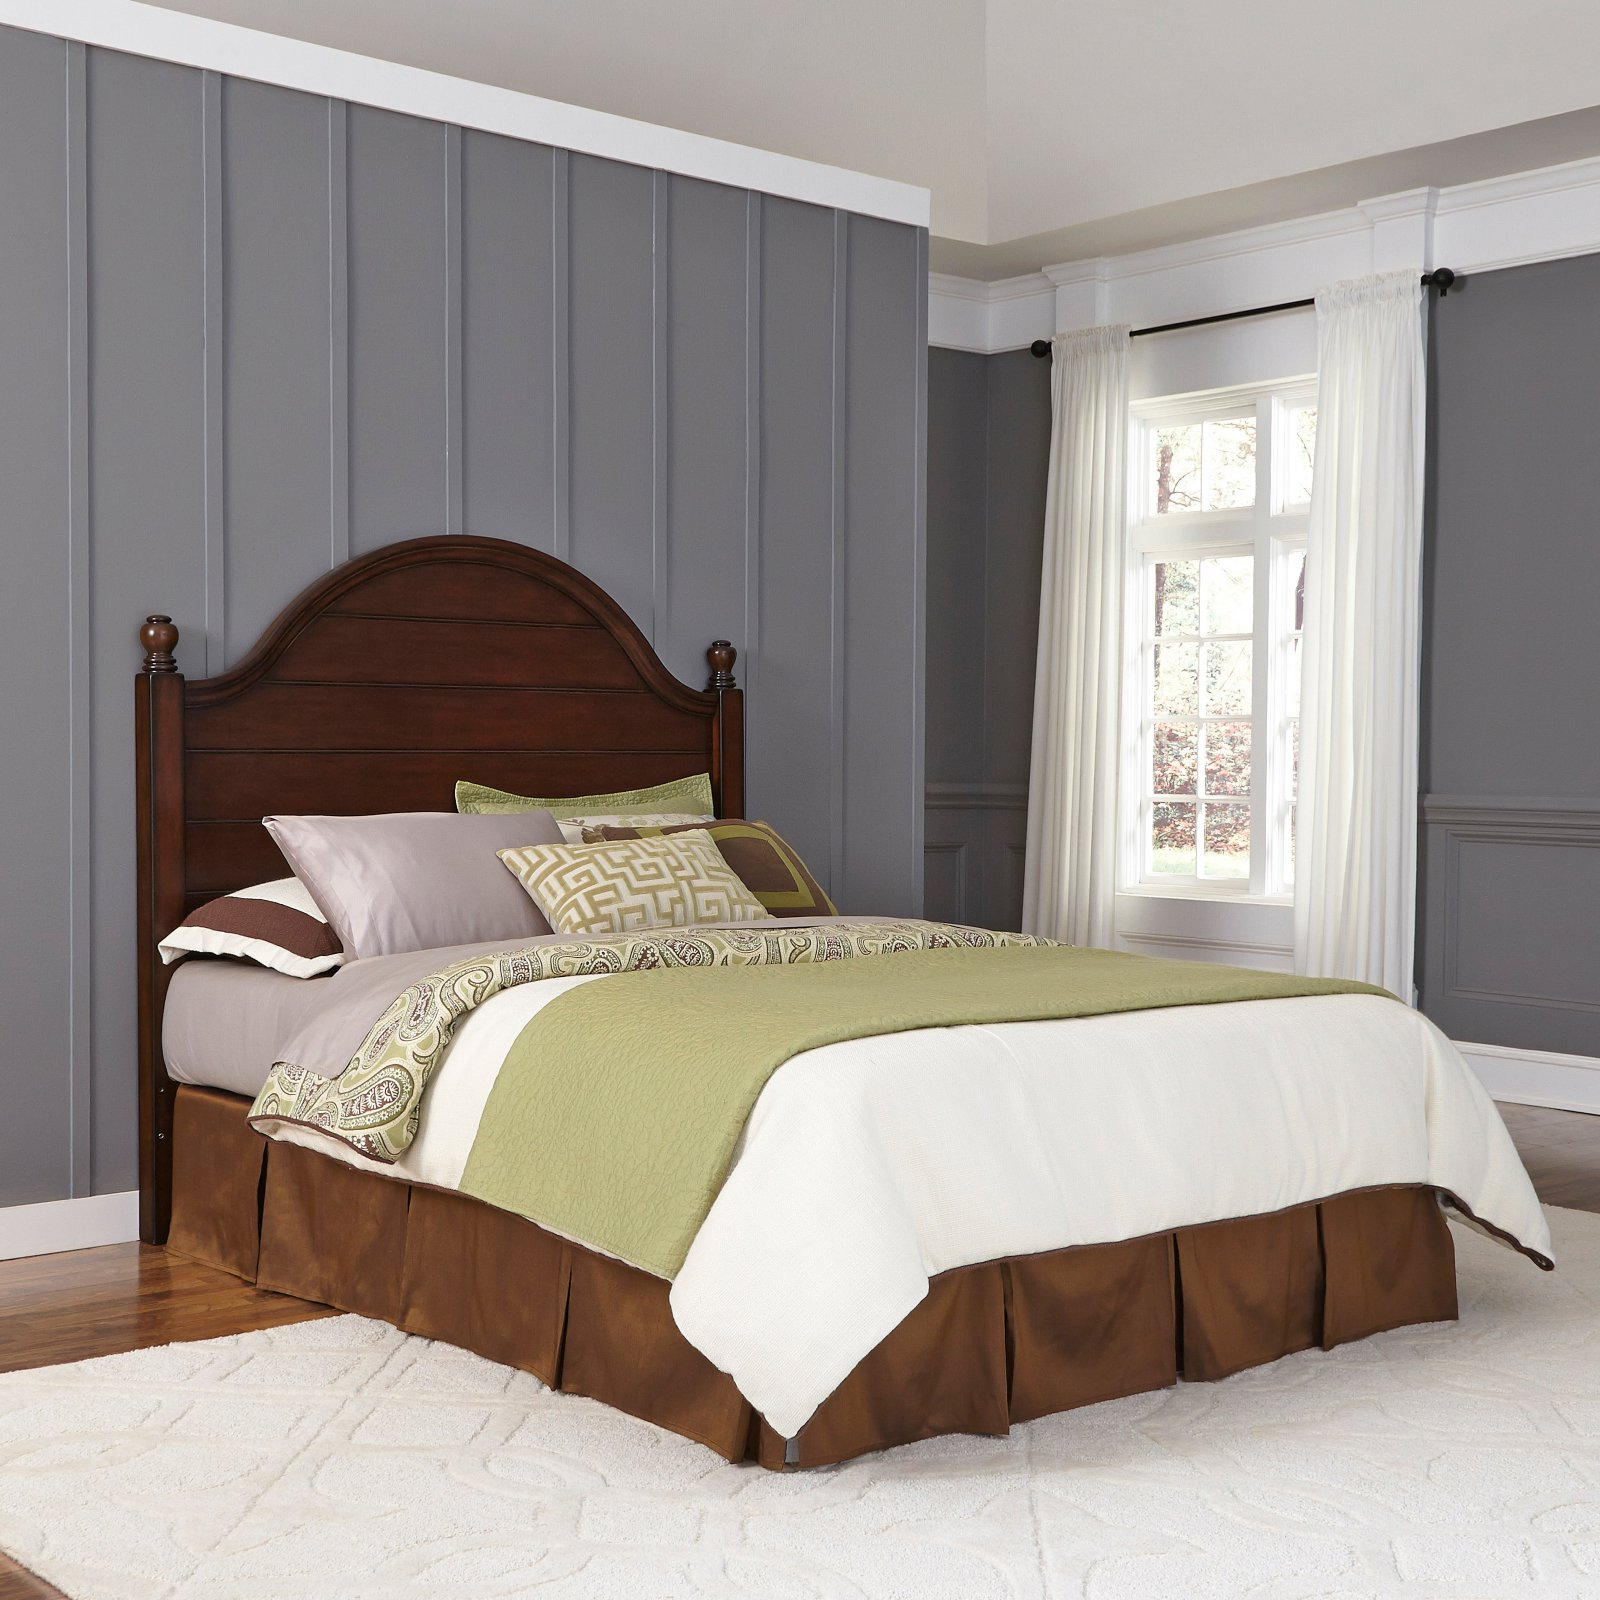 Home Styles Country Comfort Twin Headboard